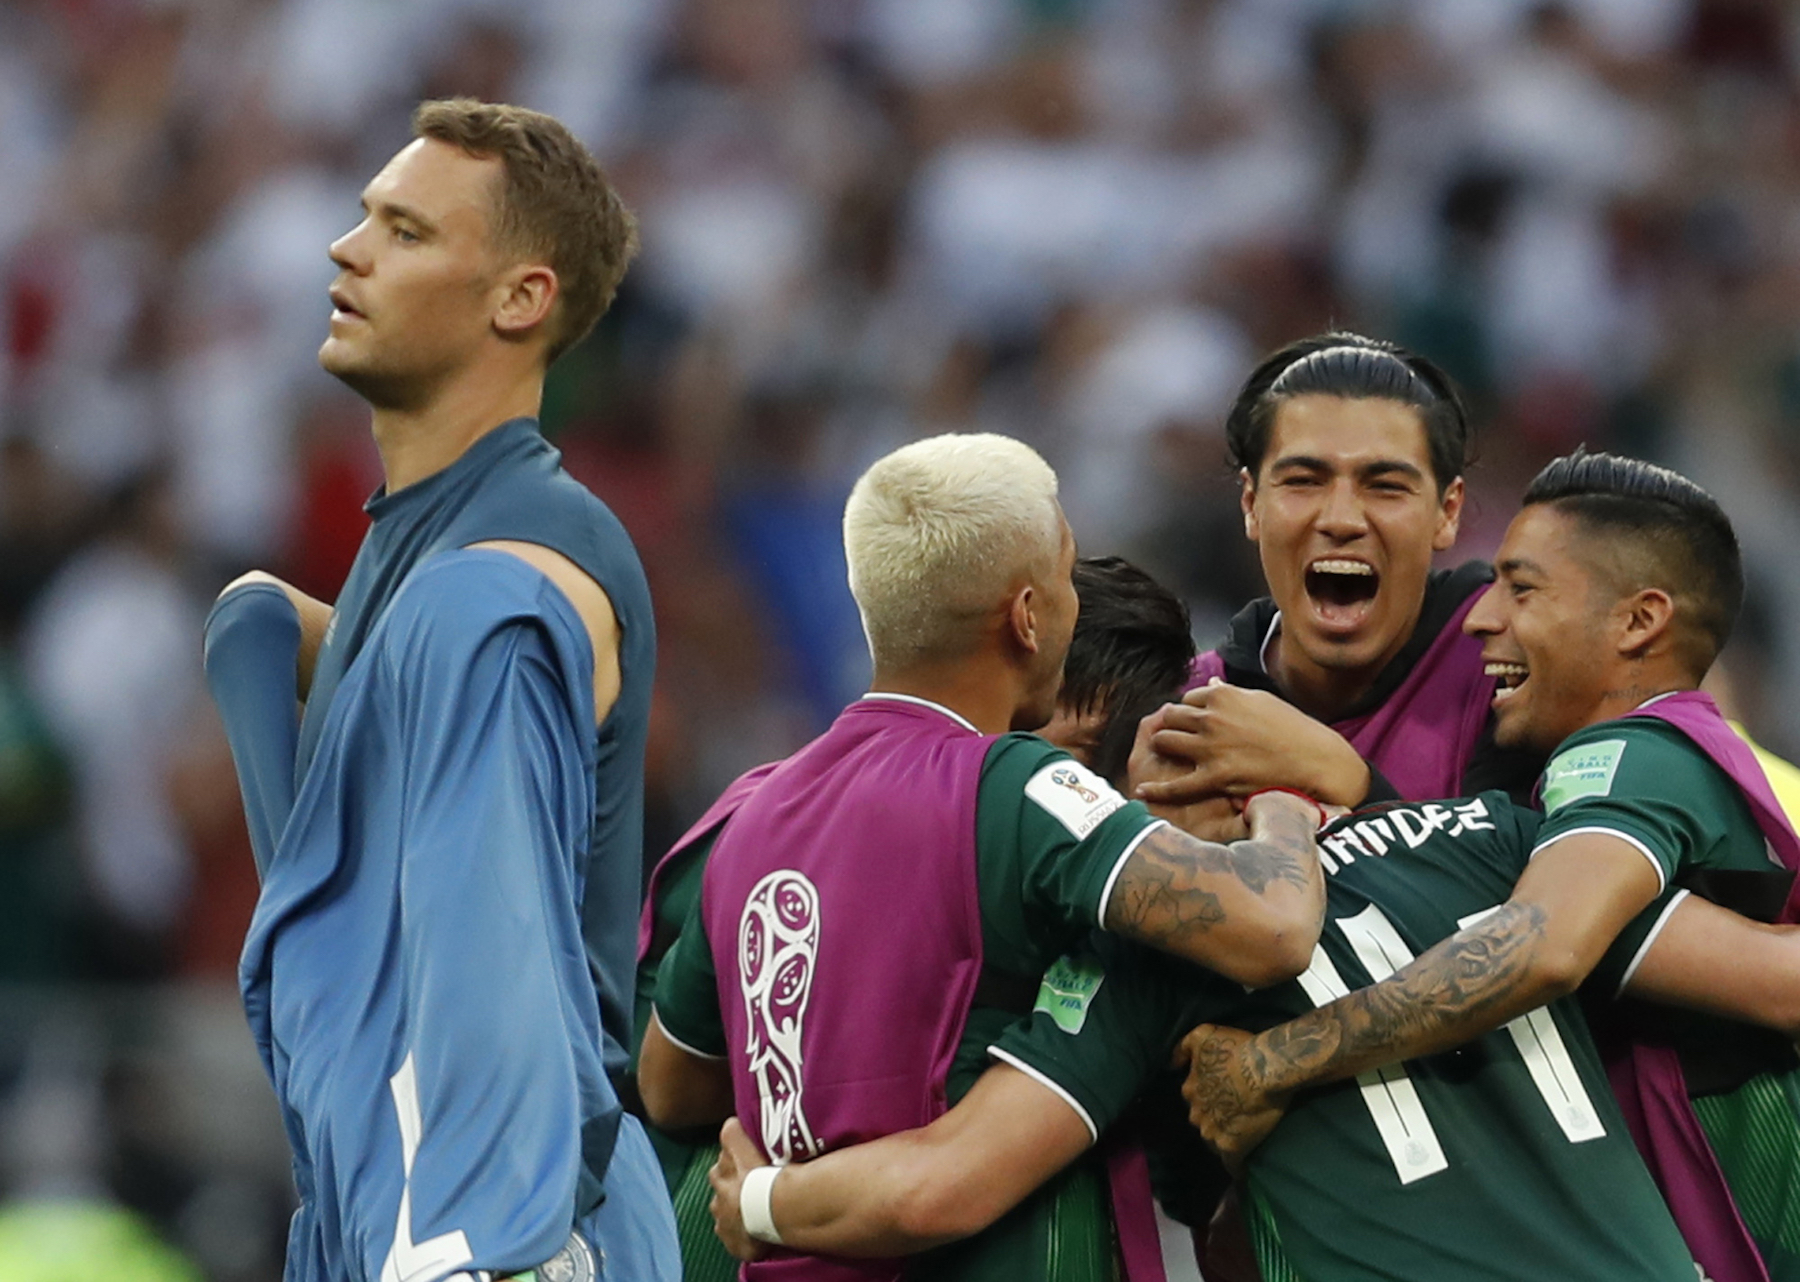 <div class='meta'><div class='origin-logo' data-origin='AP'></div><span class='caption-text' data-credit='AP Photo/Eduardo Verdugo'>Germany goalkeeper Manuel Neuer walks past as Mexico players celebrate after defeating Germany 1-0 in their group F match at the 2018 soccer World Cup.</span></div>